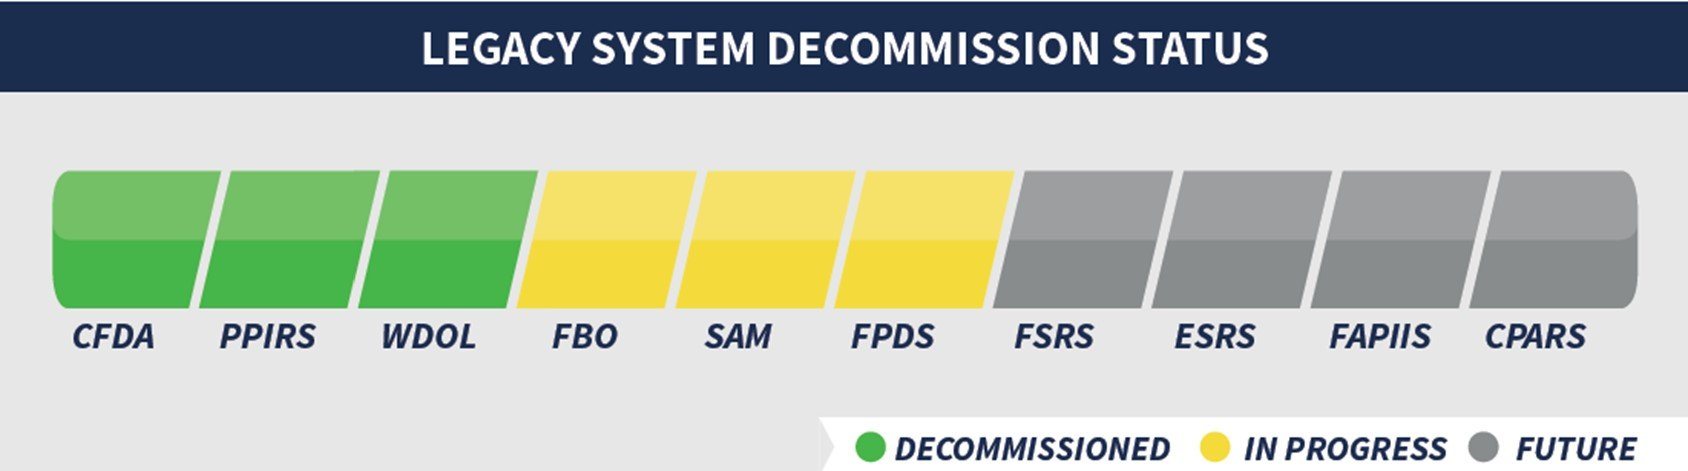 Government Legacy system decommission status